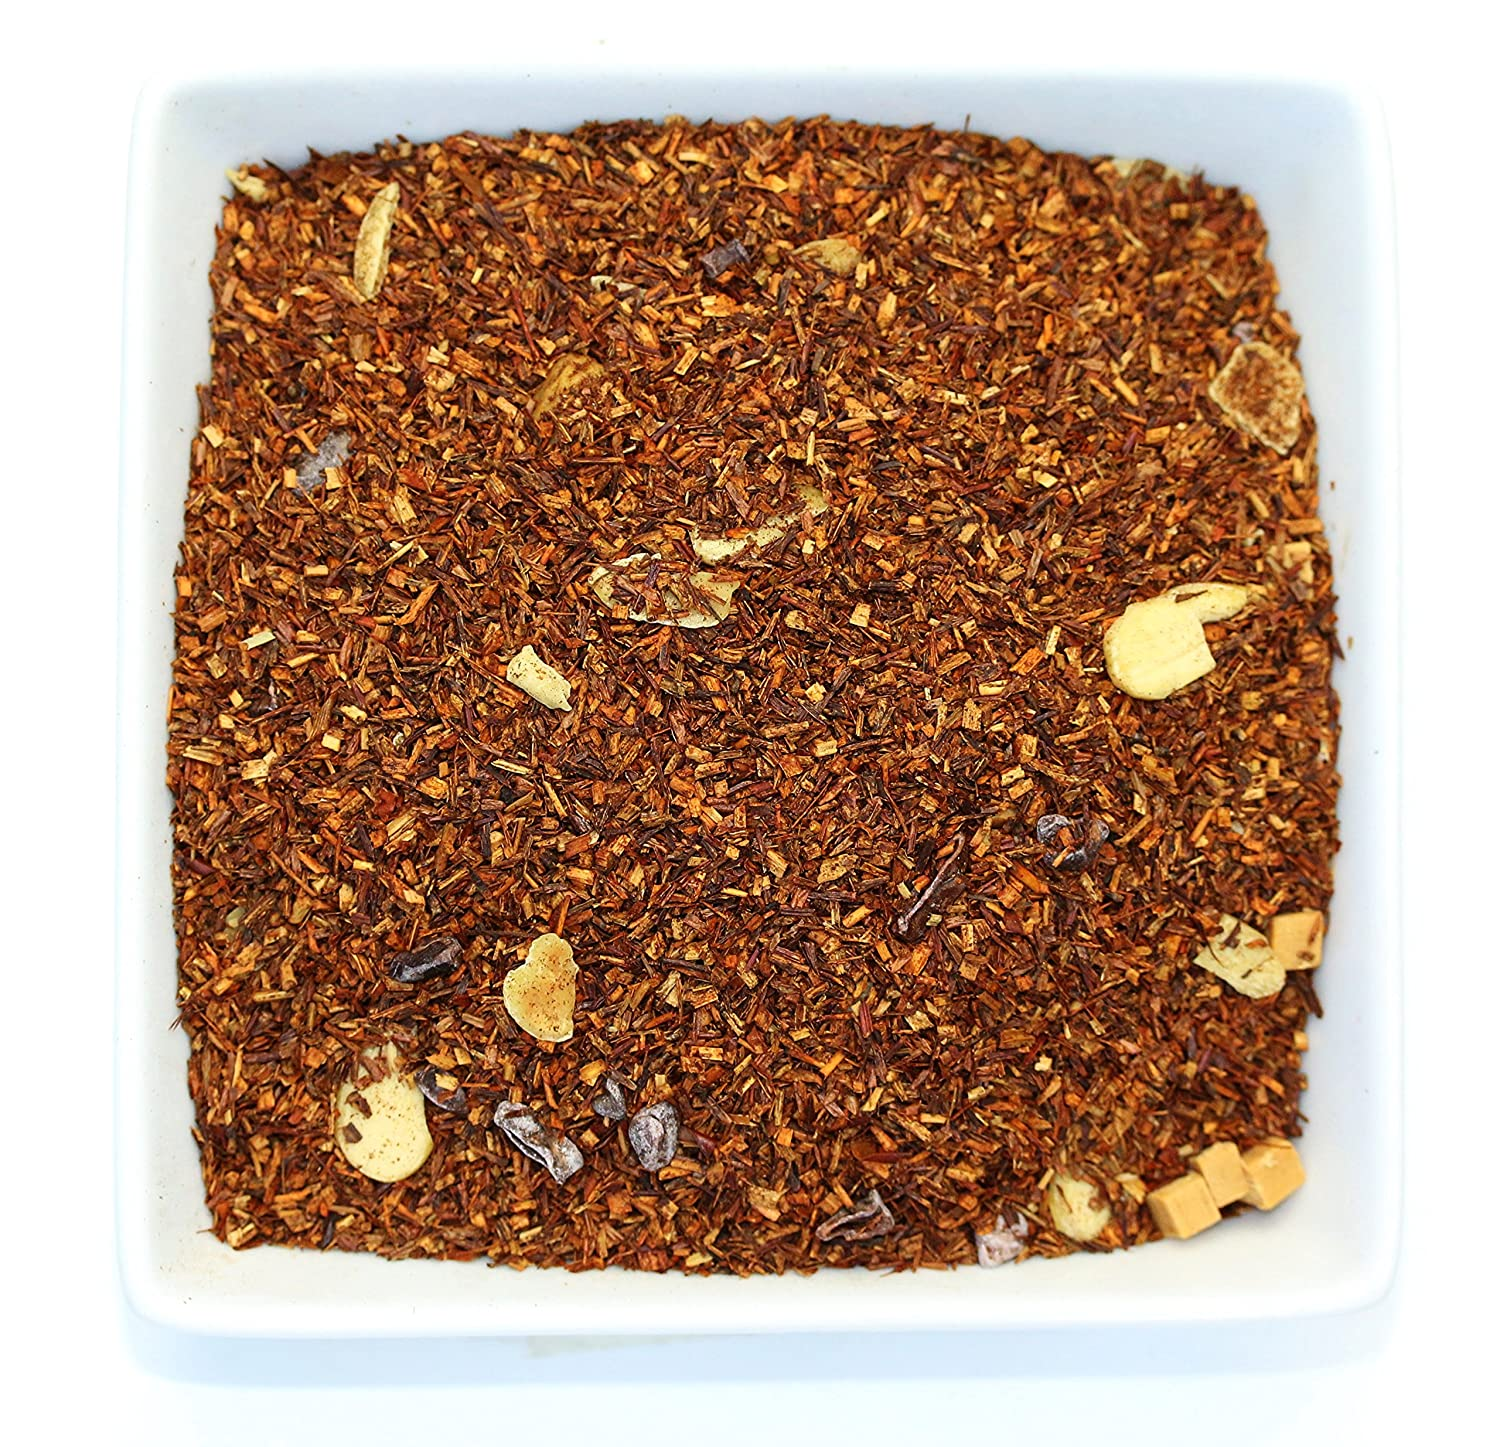 Tealyra - Rooibos Toffee Caramel - Red Bush Herbal Leaves Tea - Cocoa - Almond - Loose Leaf Tea - Caffeine Free - 112g (4-ounce)